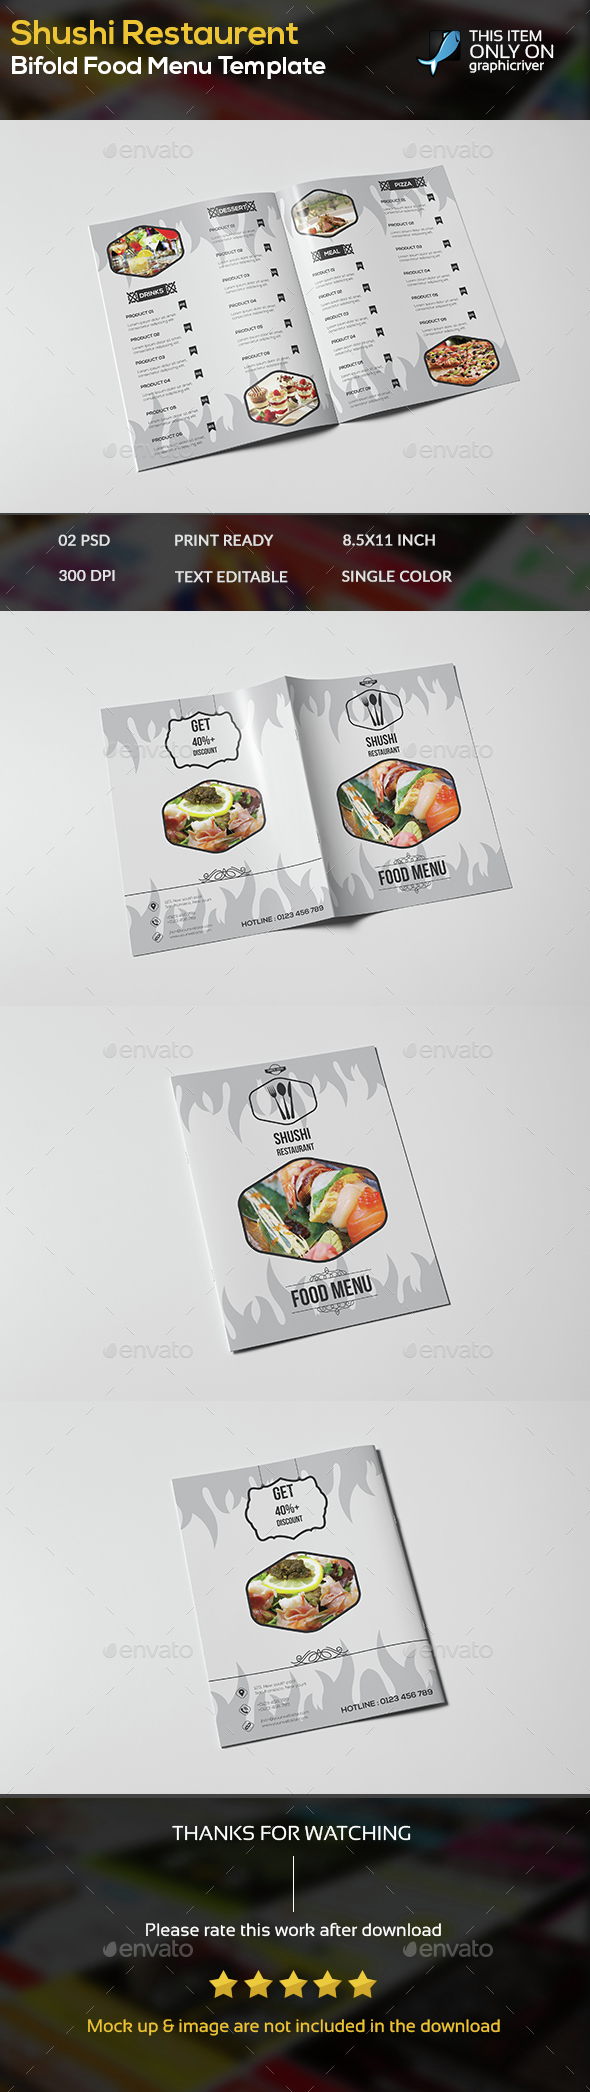 Sushi Restaurent Bifold Food Menu Template - Food Menus Print Templates